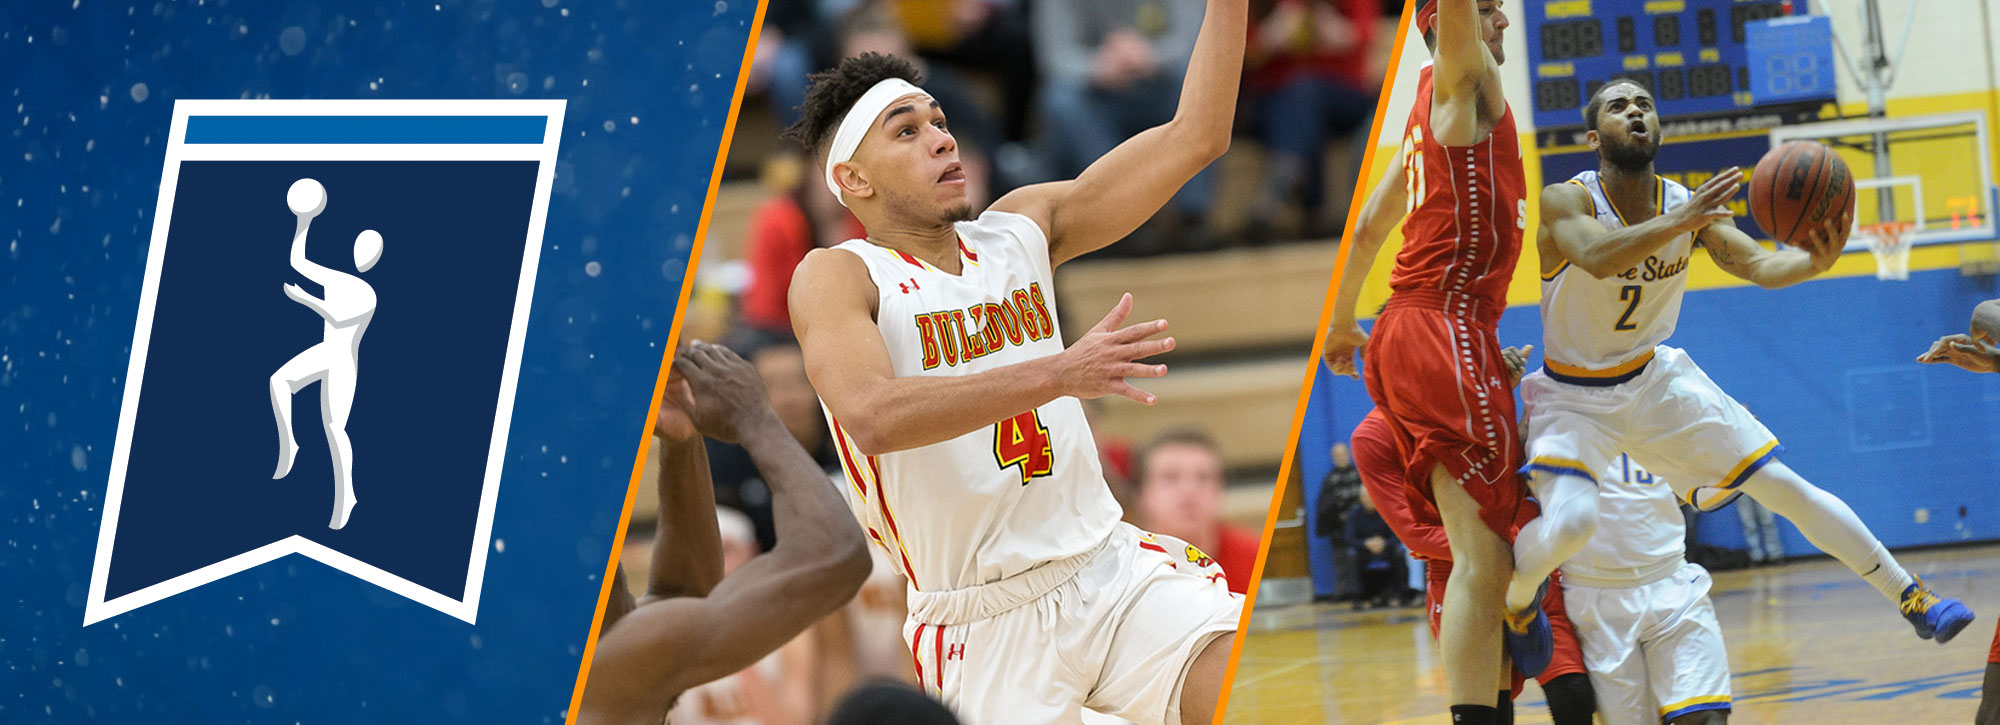 Ferris State Leads Initial Men's Basketball Region Ranks; LSSU Fourth